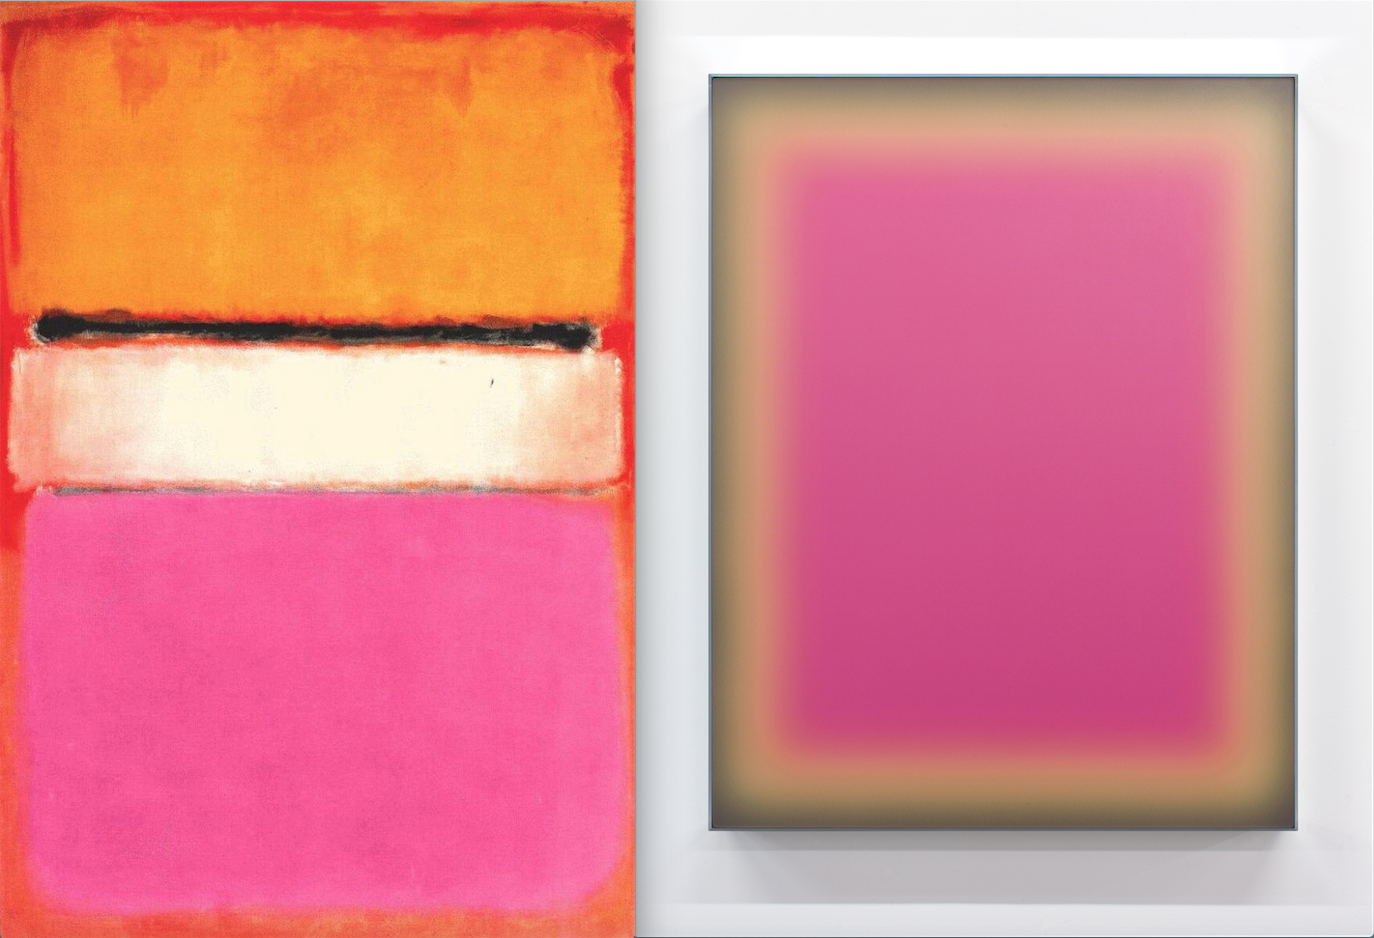 Mark Rothko, White Center, 1950, oil on canvas (left) and Jonny Niesche, 'Cosmetic calculator (Picture this Pink)', Voile and acrylic mirror. Image courtesy of Station Gallery and the artist.  Jonny Niesche is represented by Sarah Cottier Gallery.